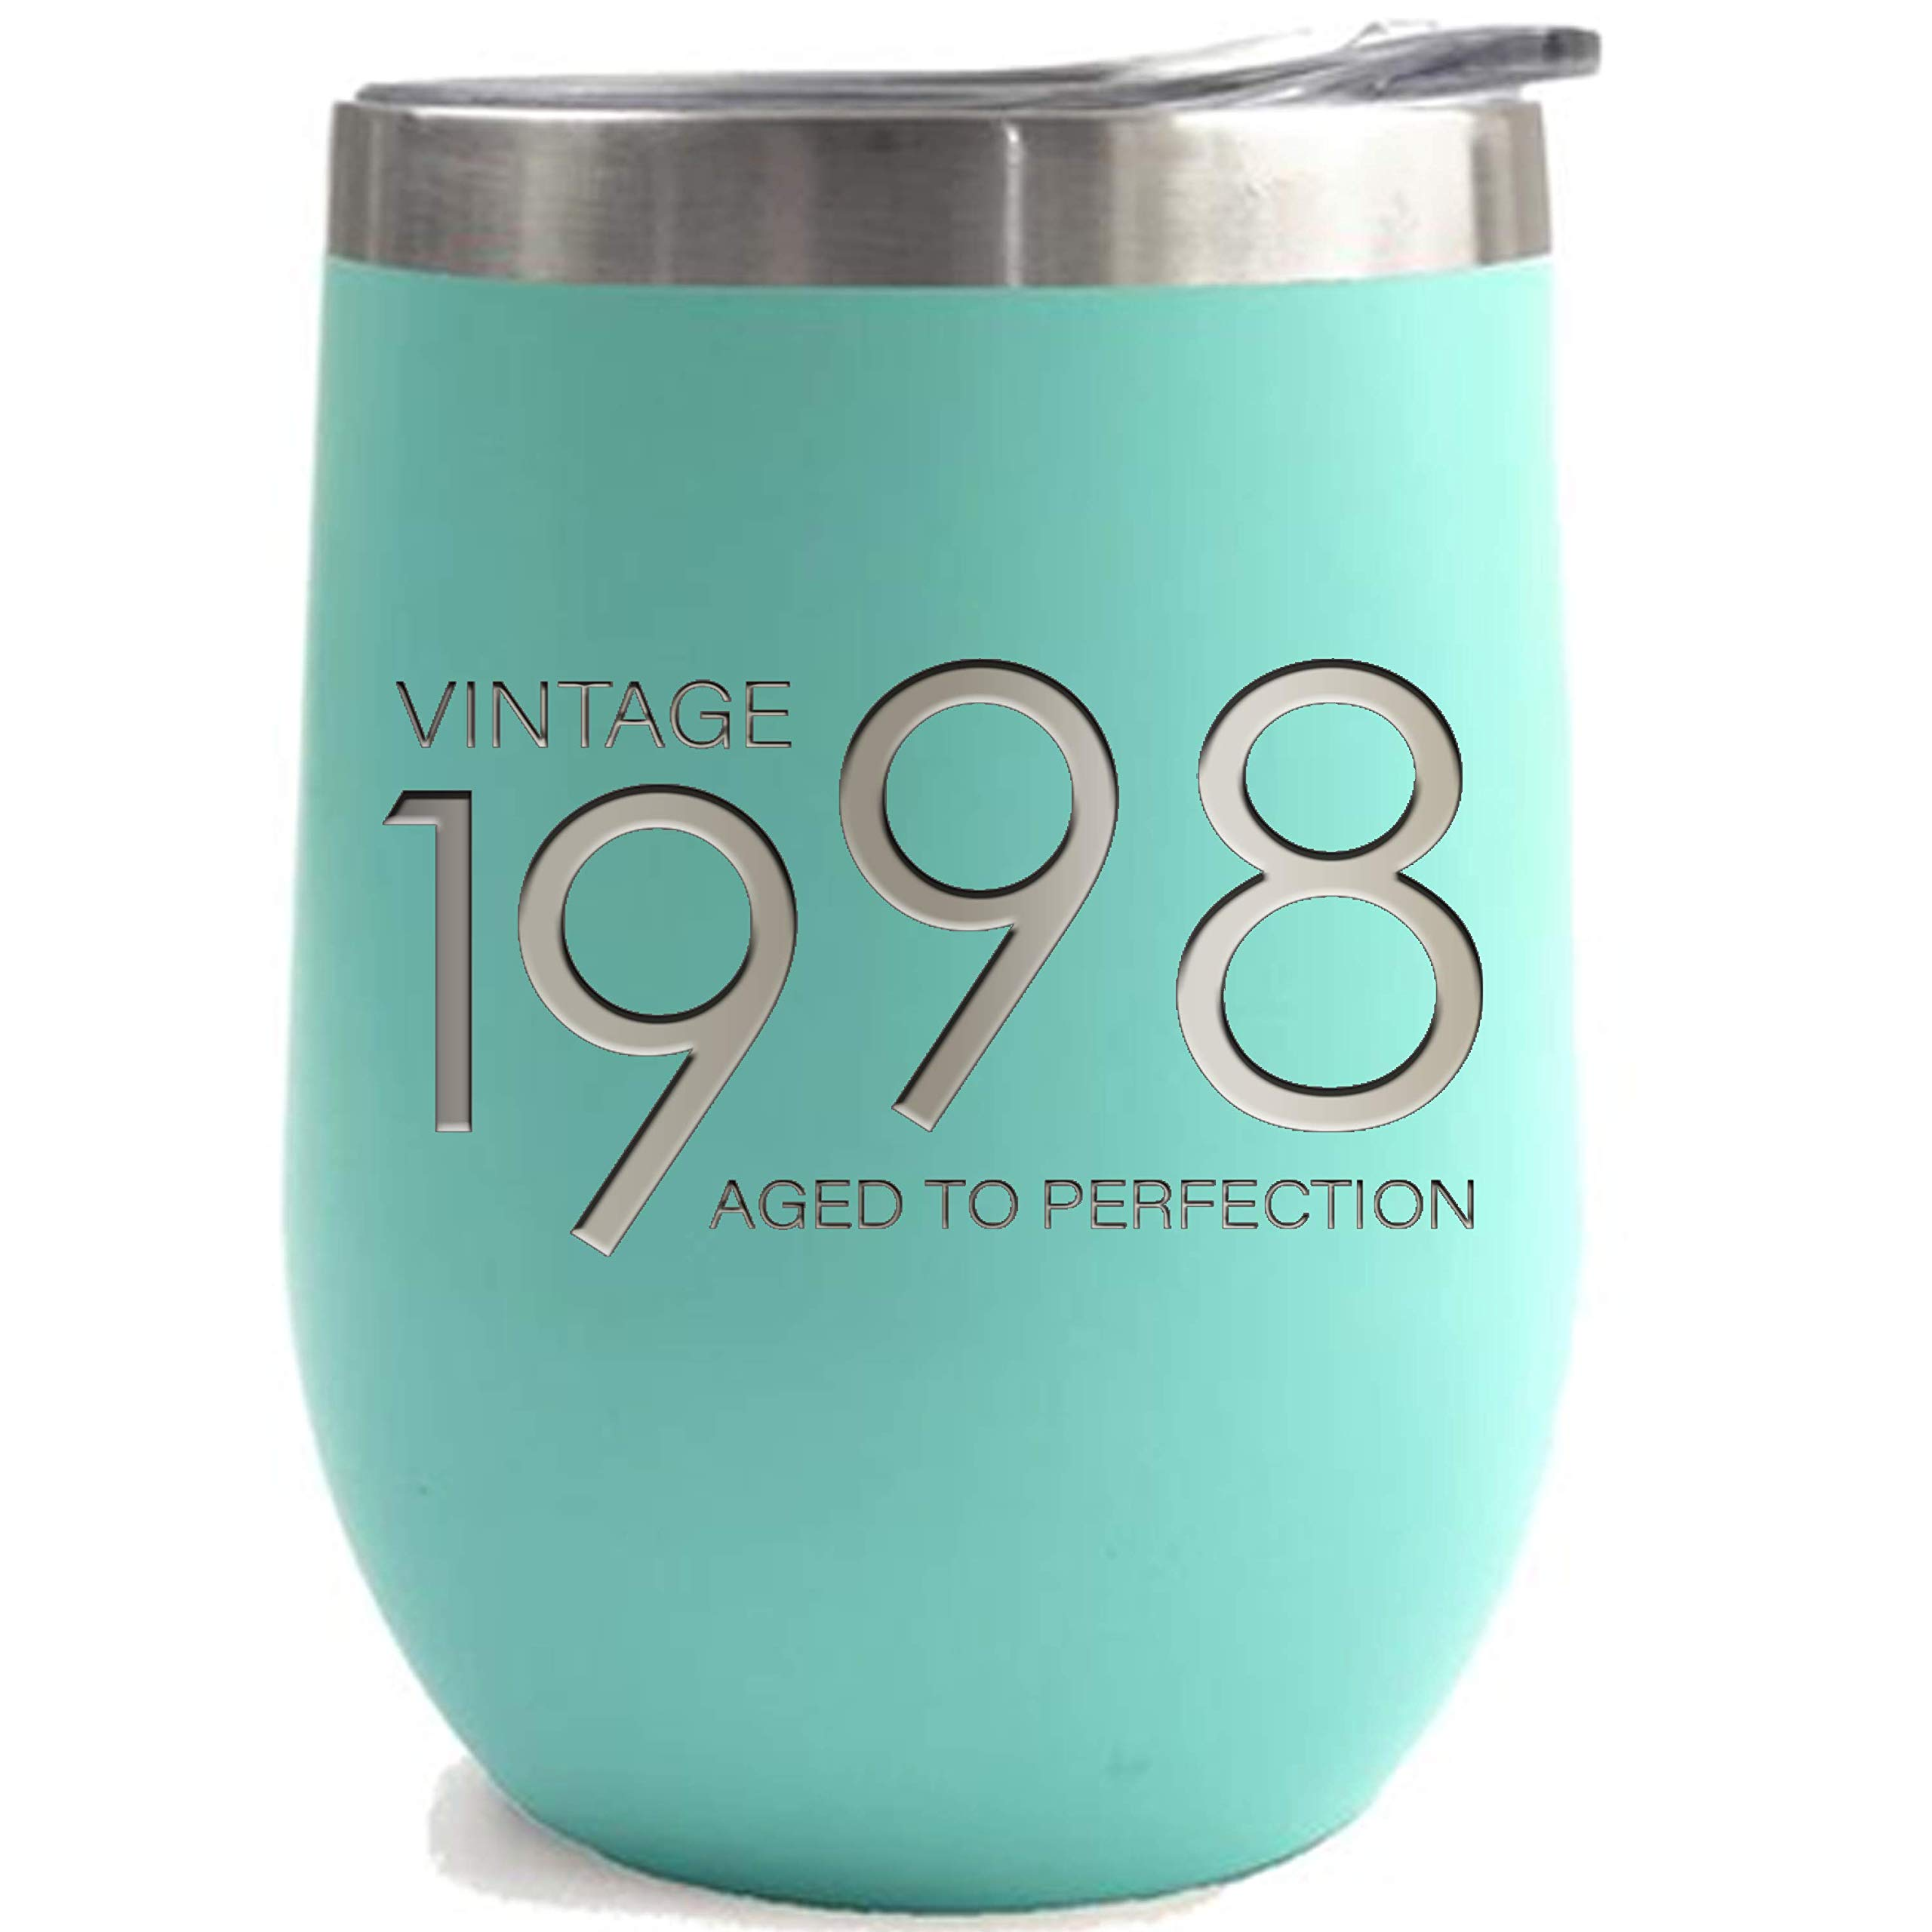 1998 21st Birthday Gifts for Women and Men Mint 12 oz Insulated Stainless Steel Tumbler | 21 Year Old Presents | Mom Dad Wife Husband Present | Party Decorations Supplies Anniversary Tumblers Gift th by Sodilly